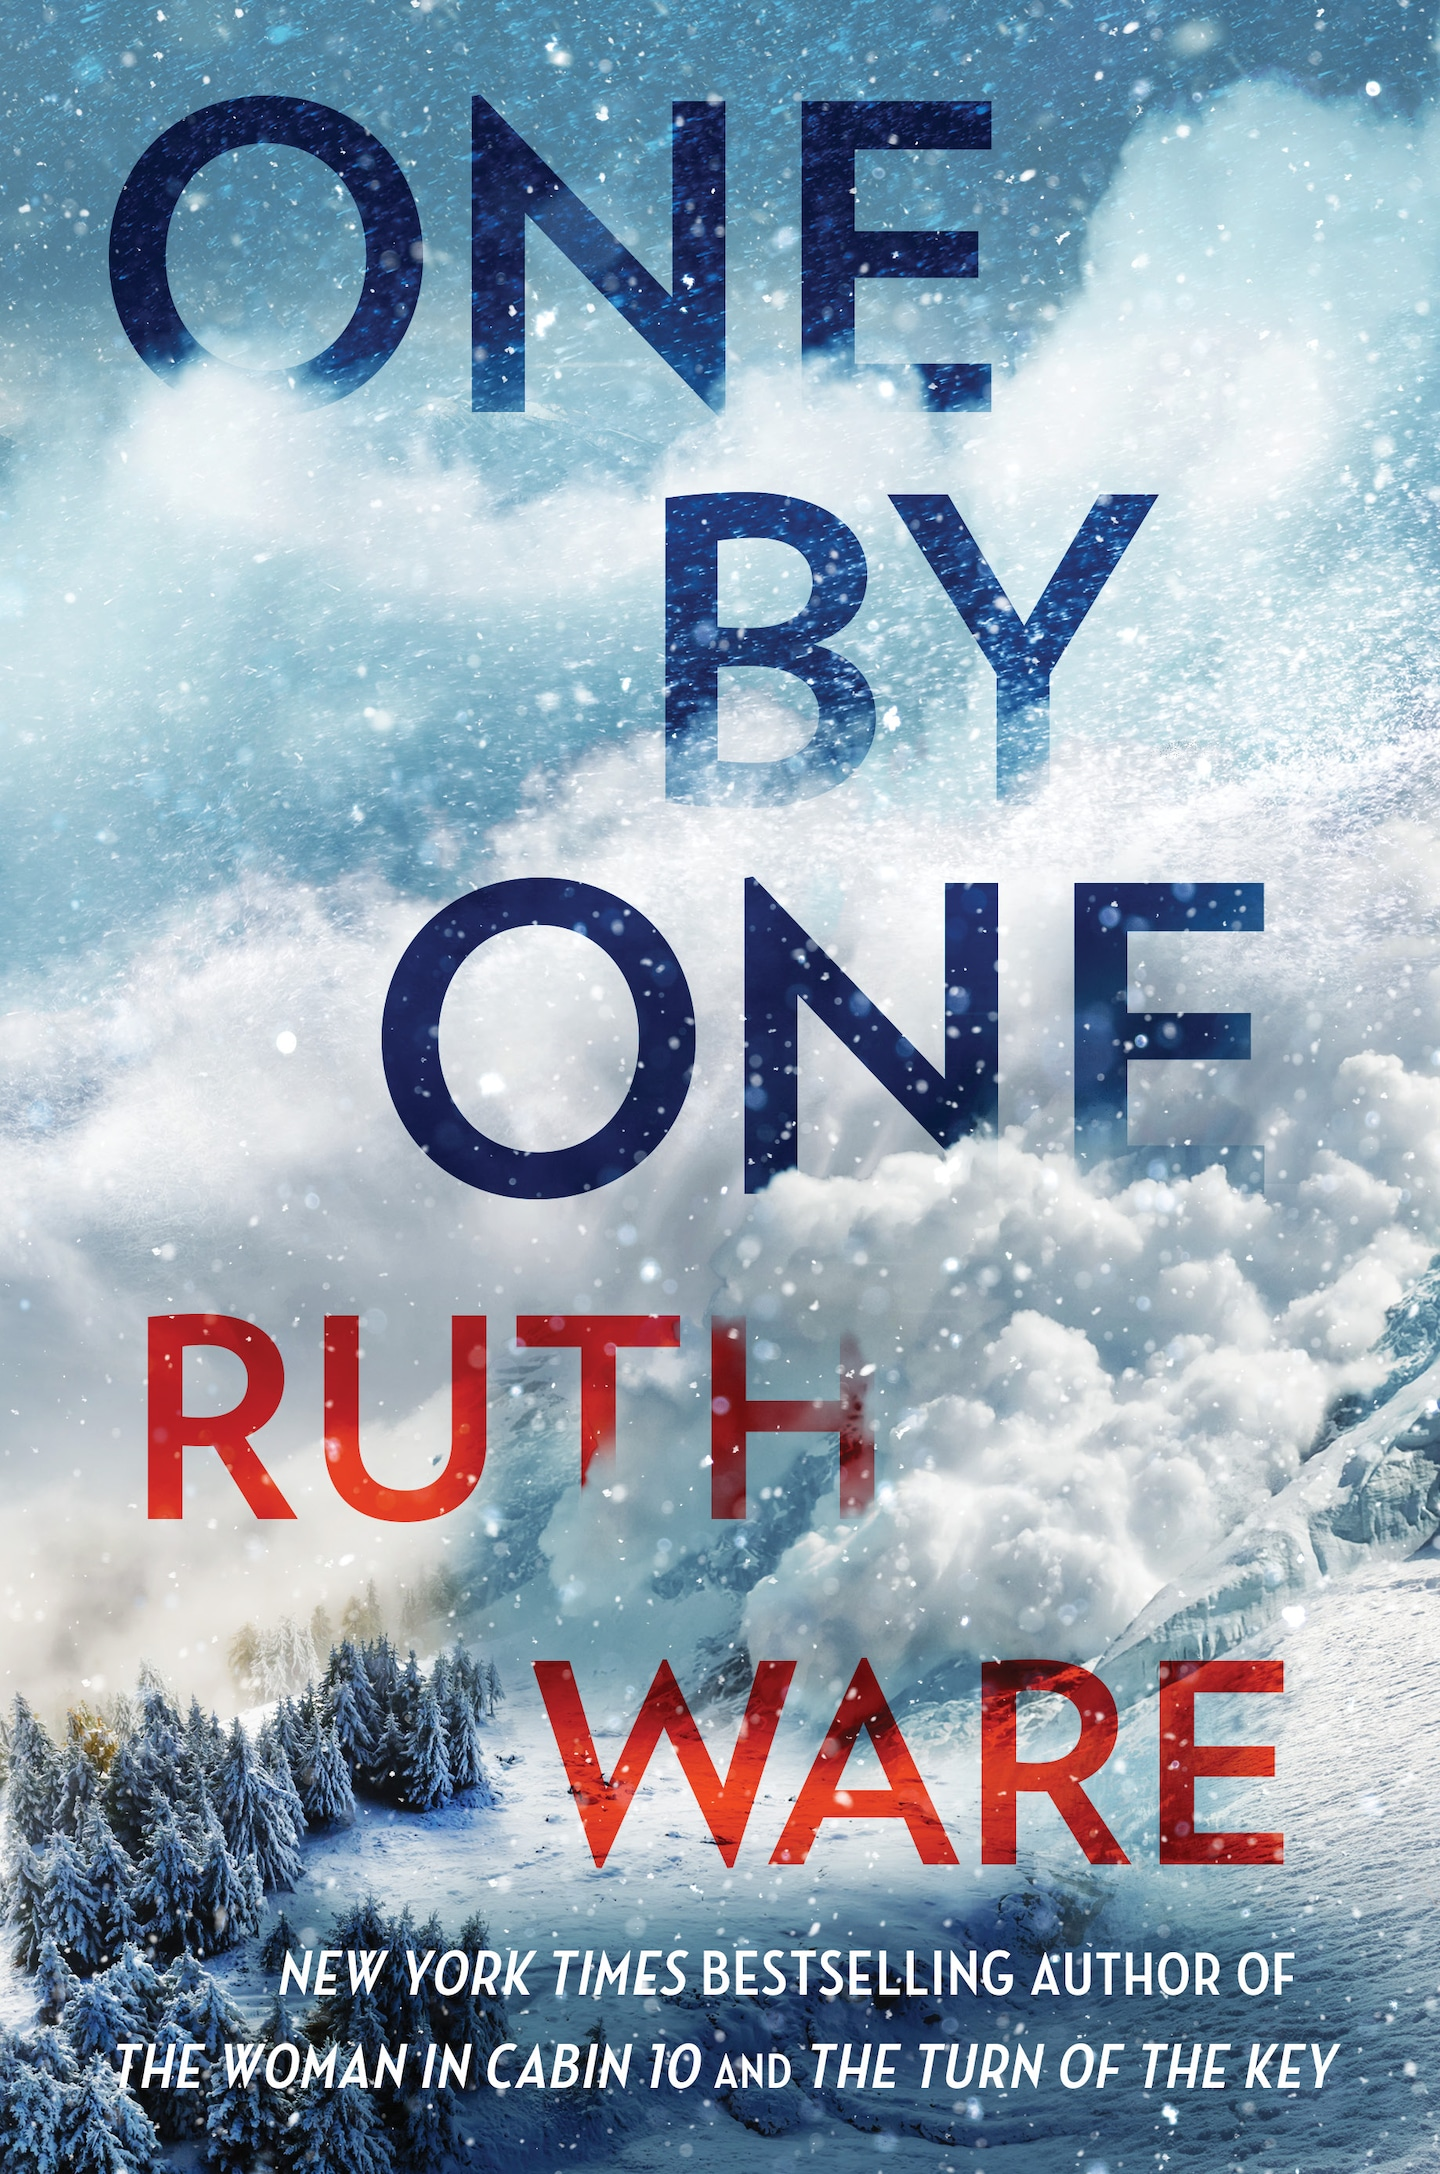 Ruth Ware's ingenious 'One by One' pays homage to Agatha Christie's 'And Then There Were None'